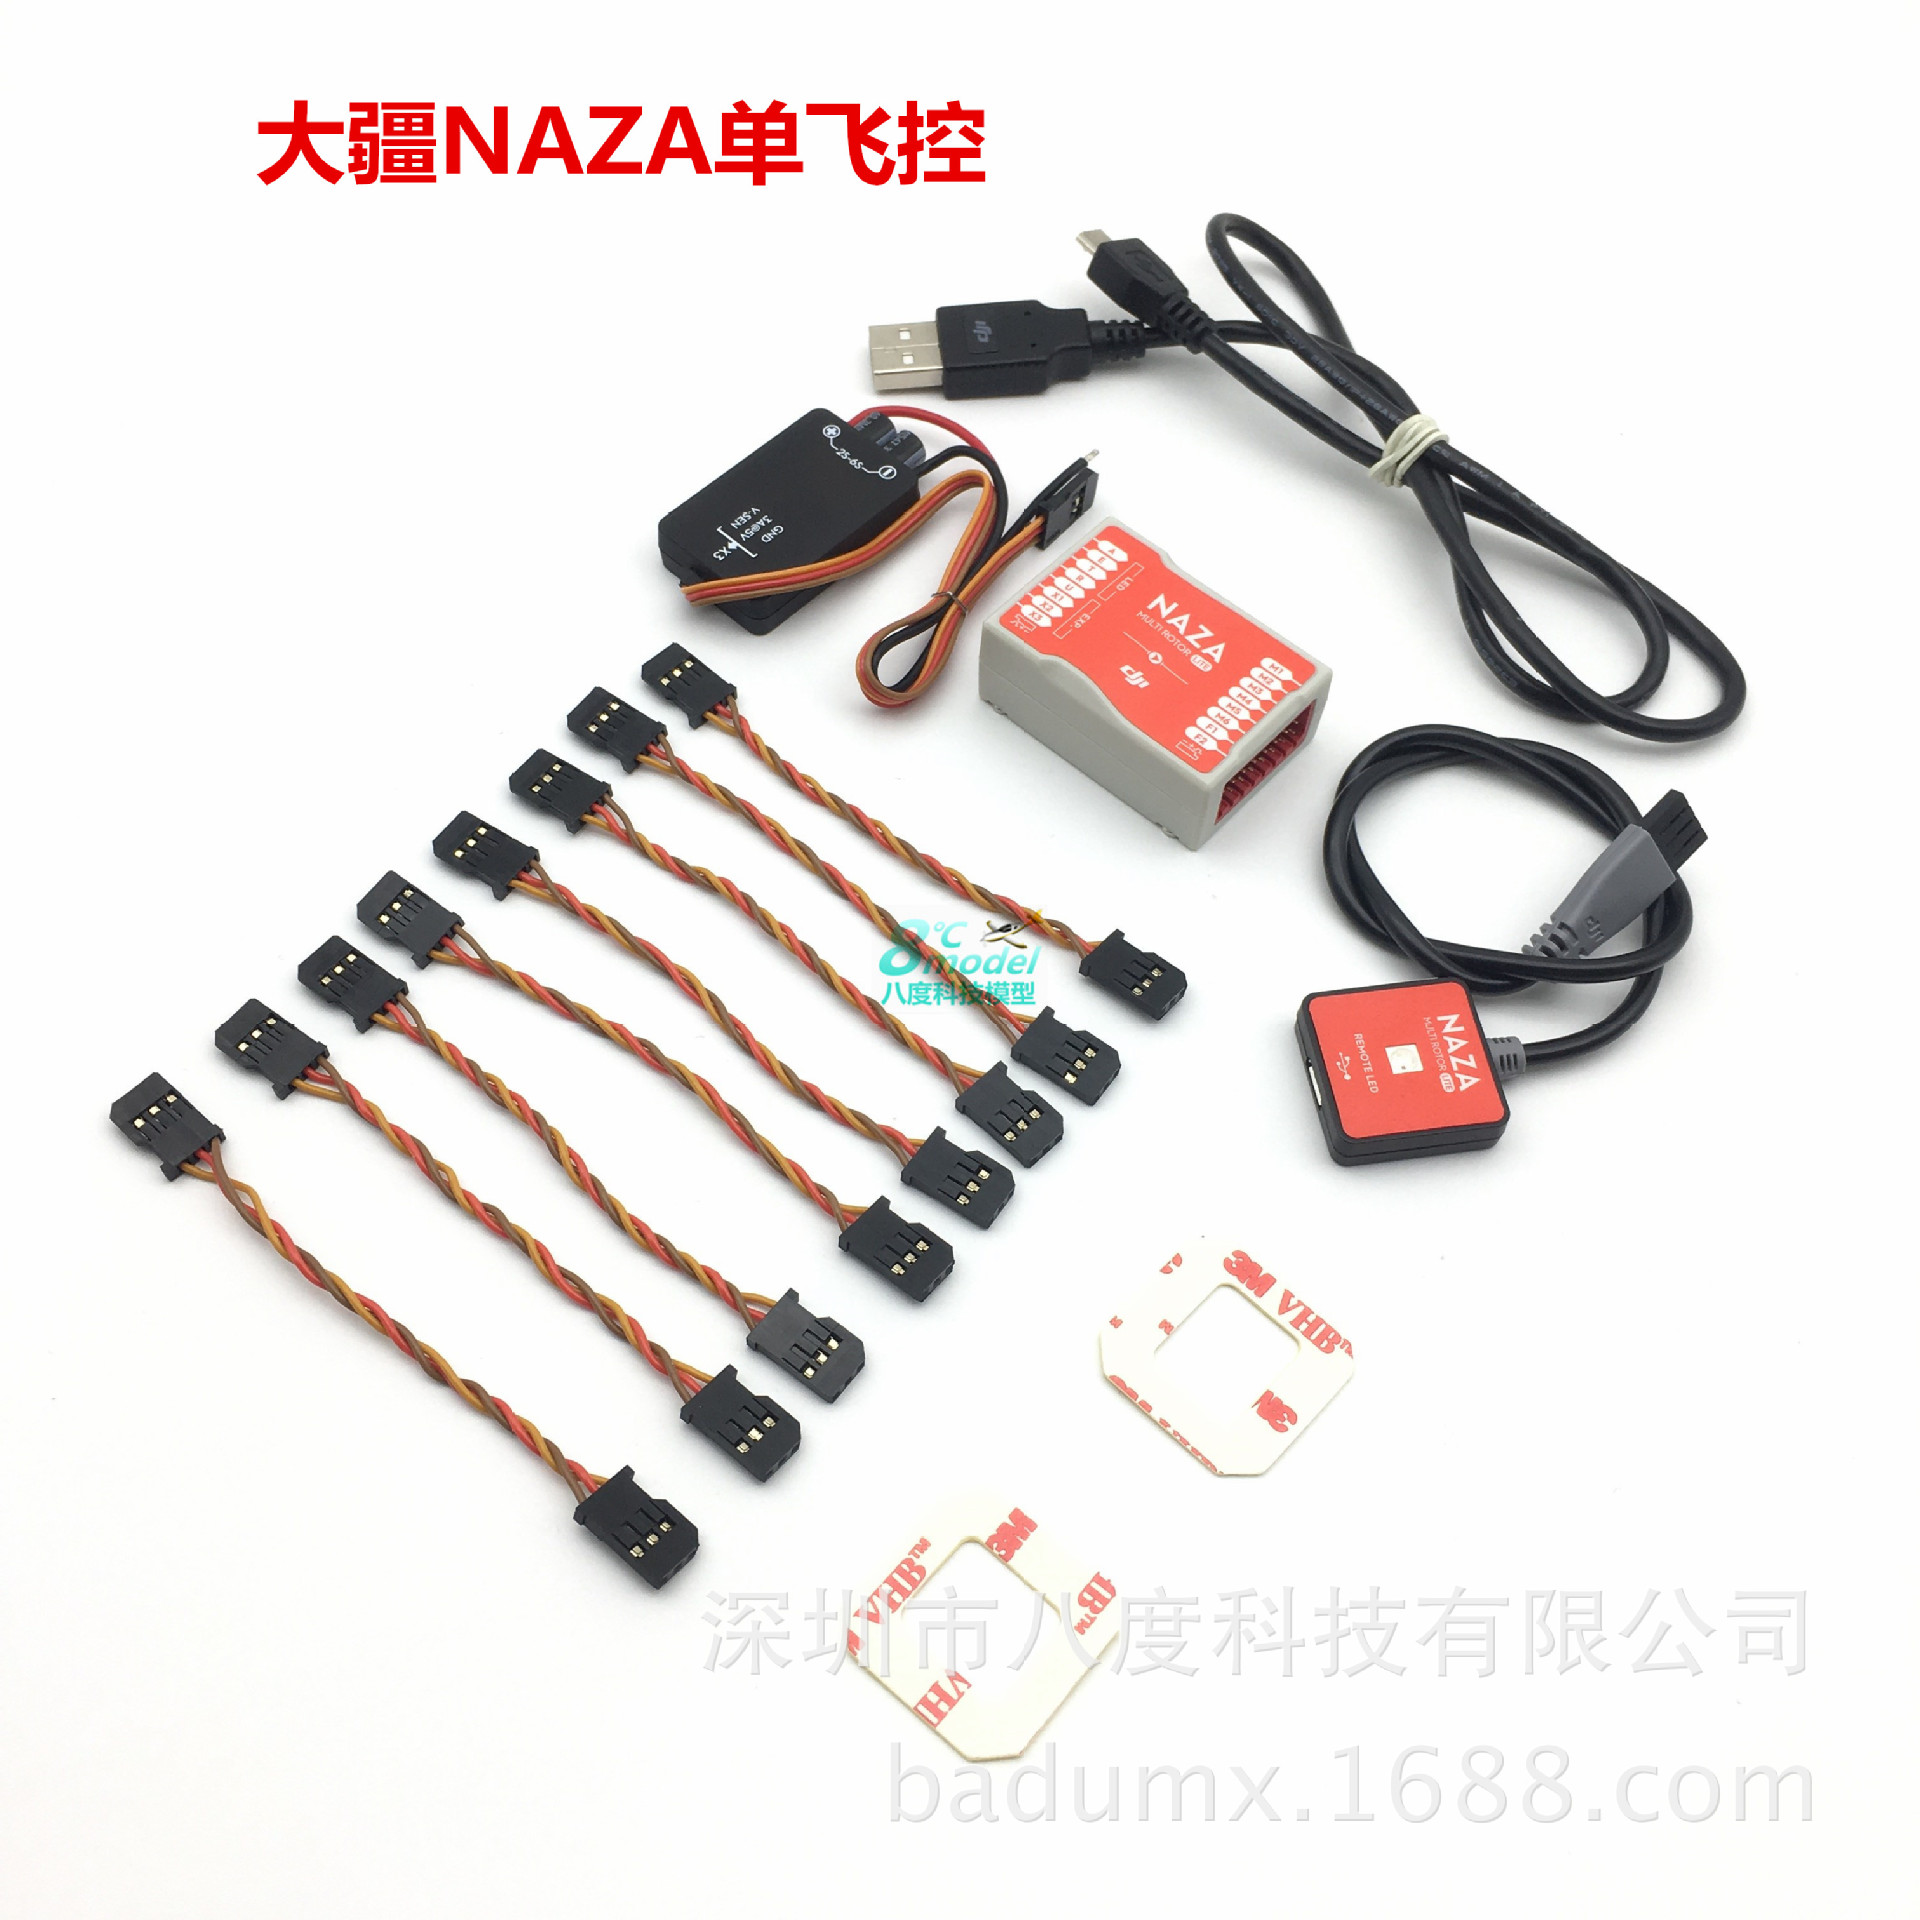 FPV Four-axis Six-Axis Aircraft DIY Suit Nezha Flight Control Naza LiTE Gps Dji Unmanned Aerial Vehicle Extraordinary